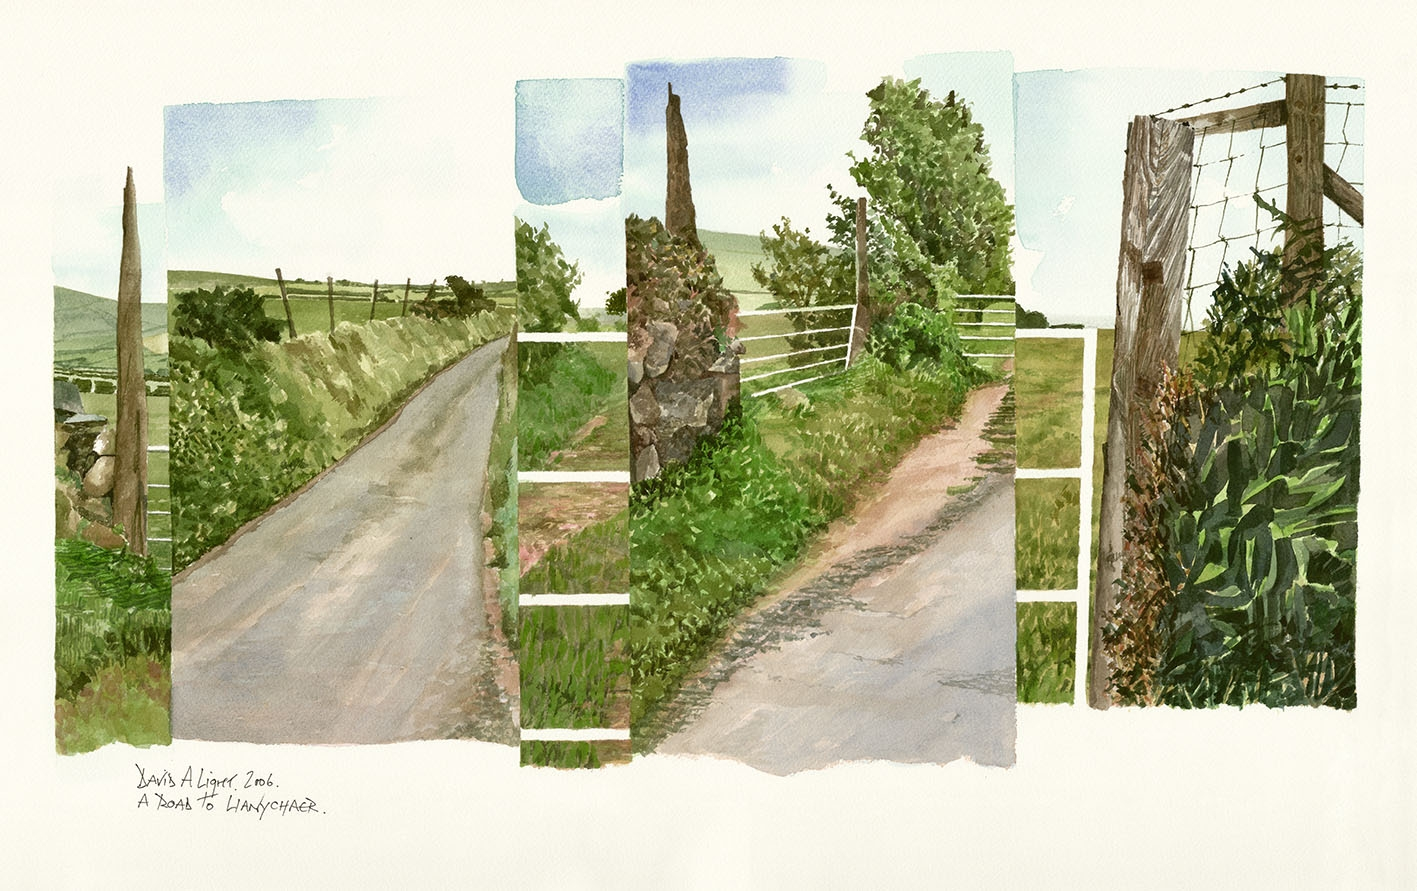 25-A-Road-to-Llanychaer